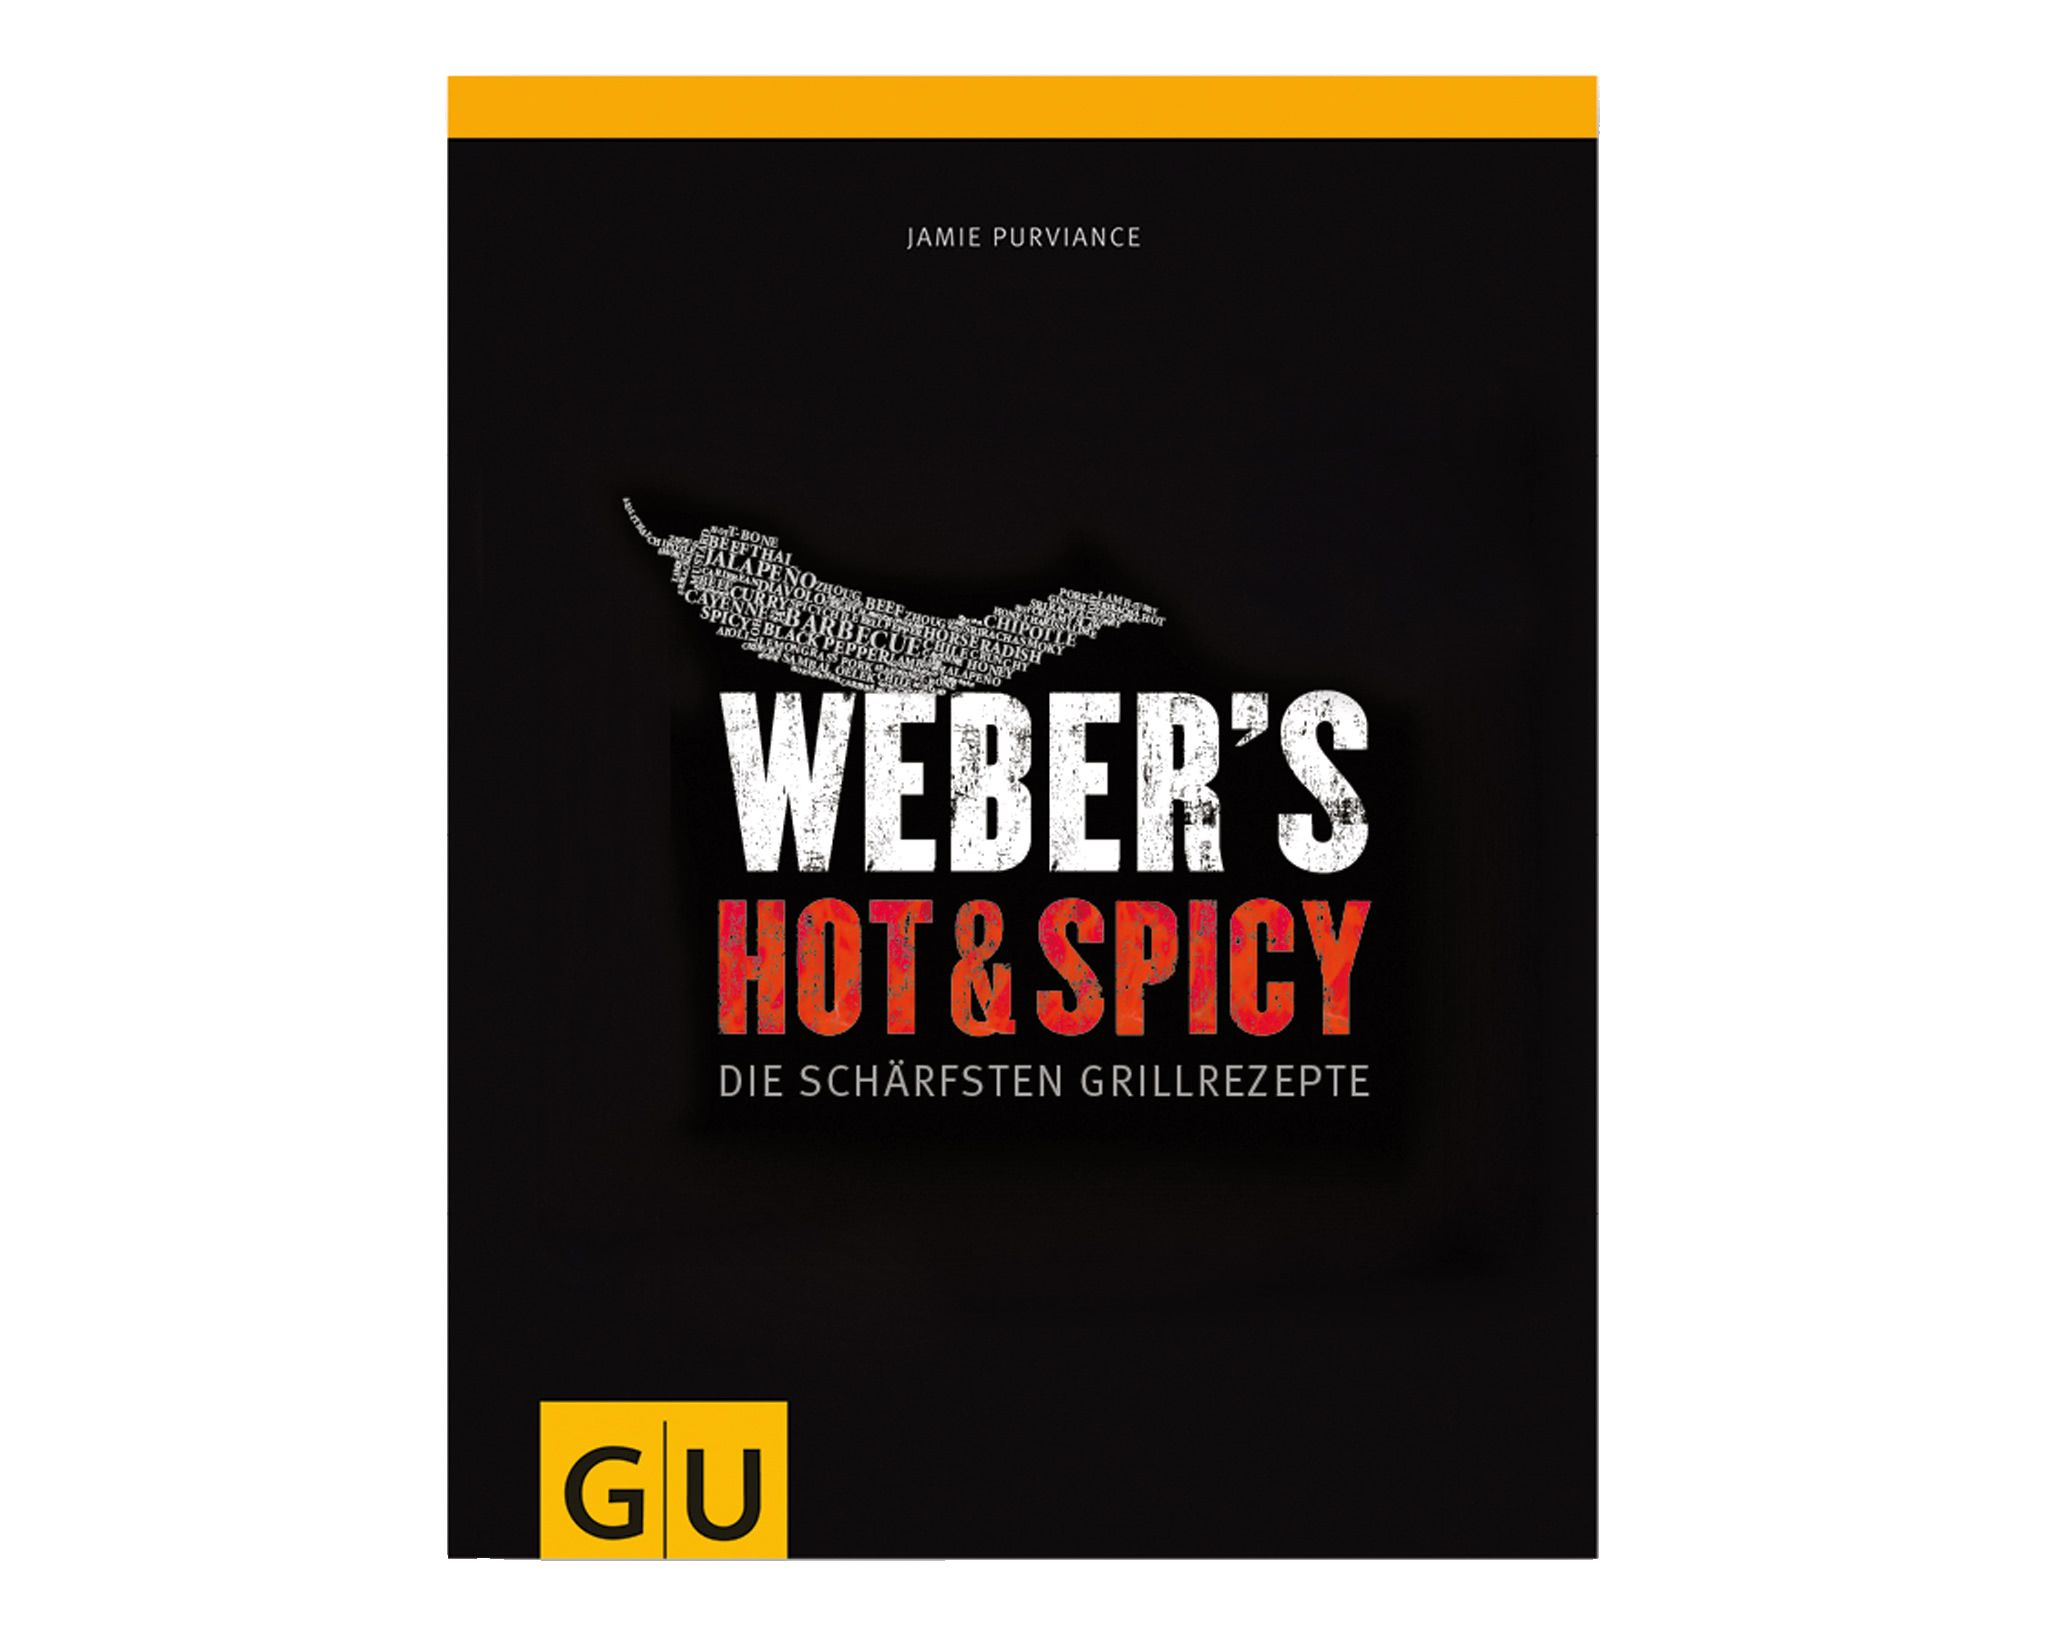 Webers® Hot & Spicy, Buch